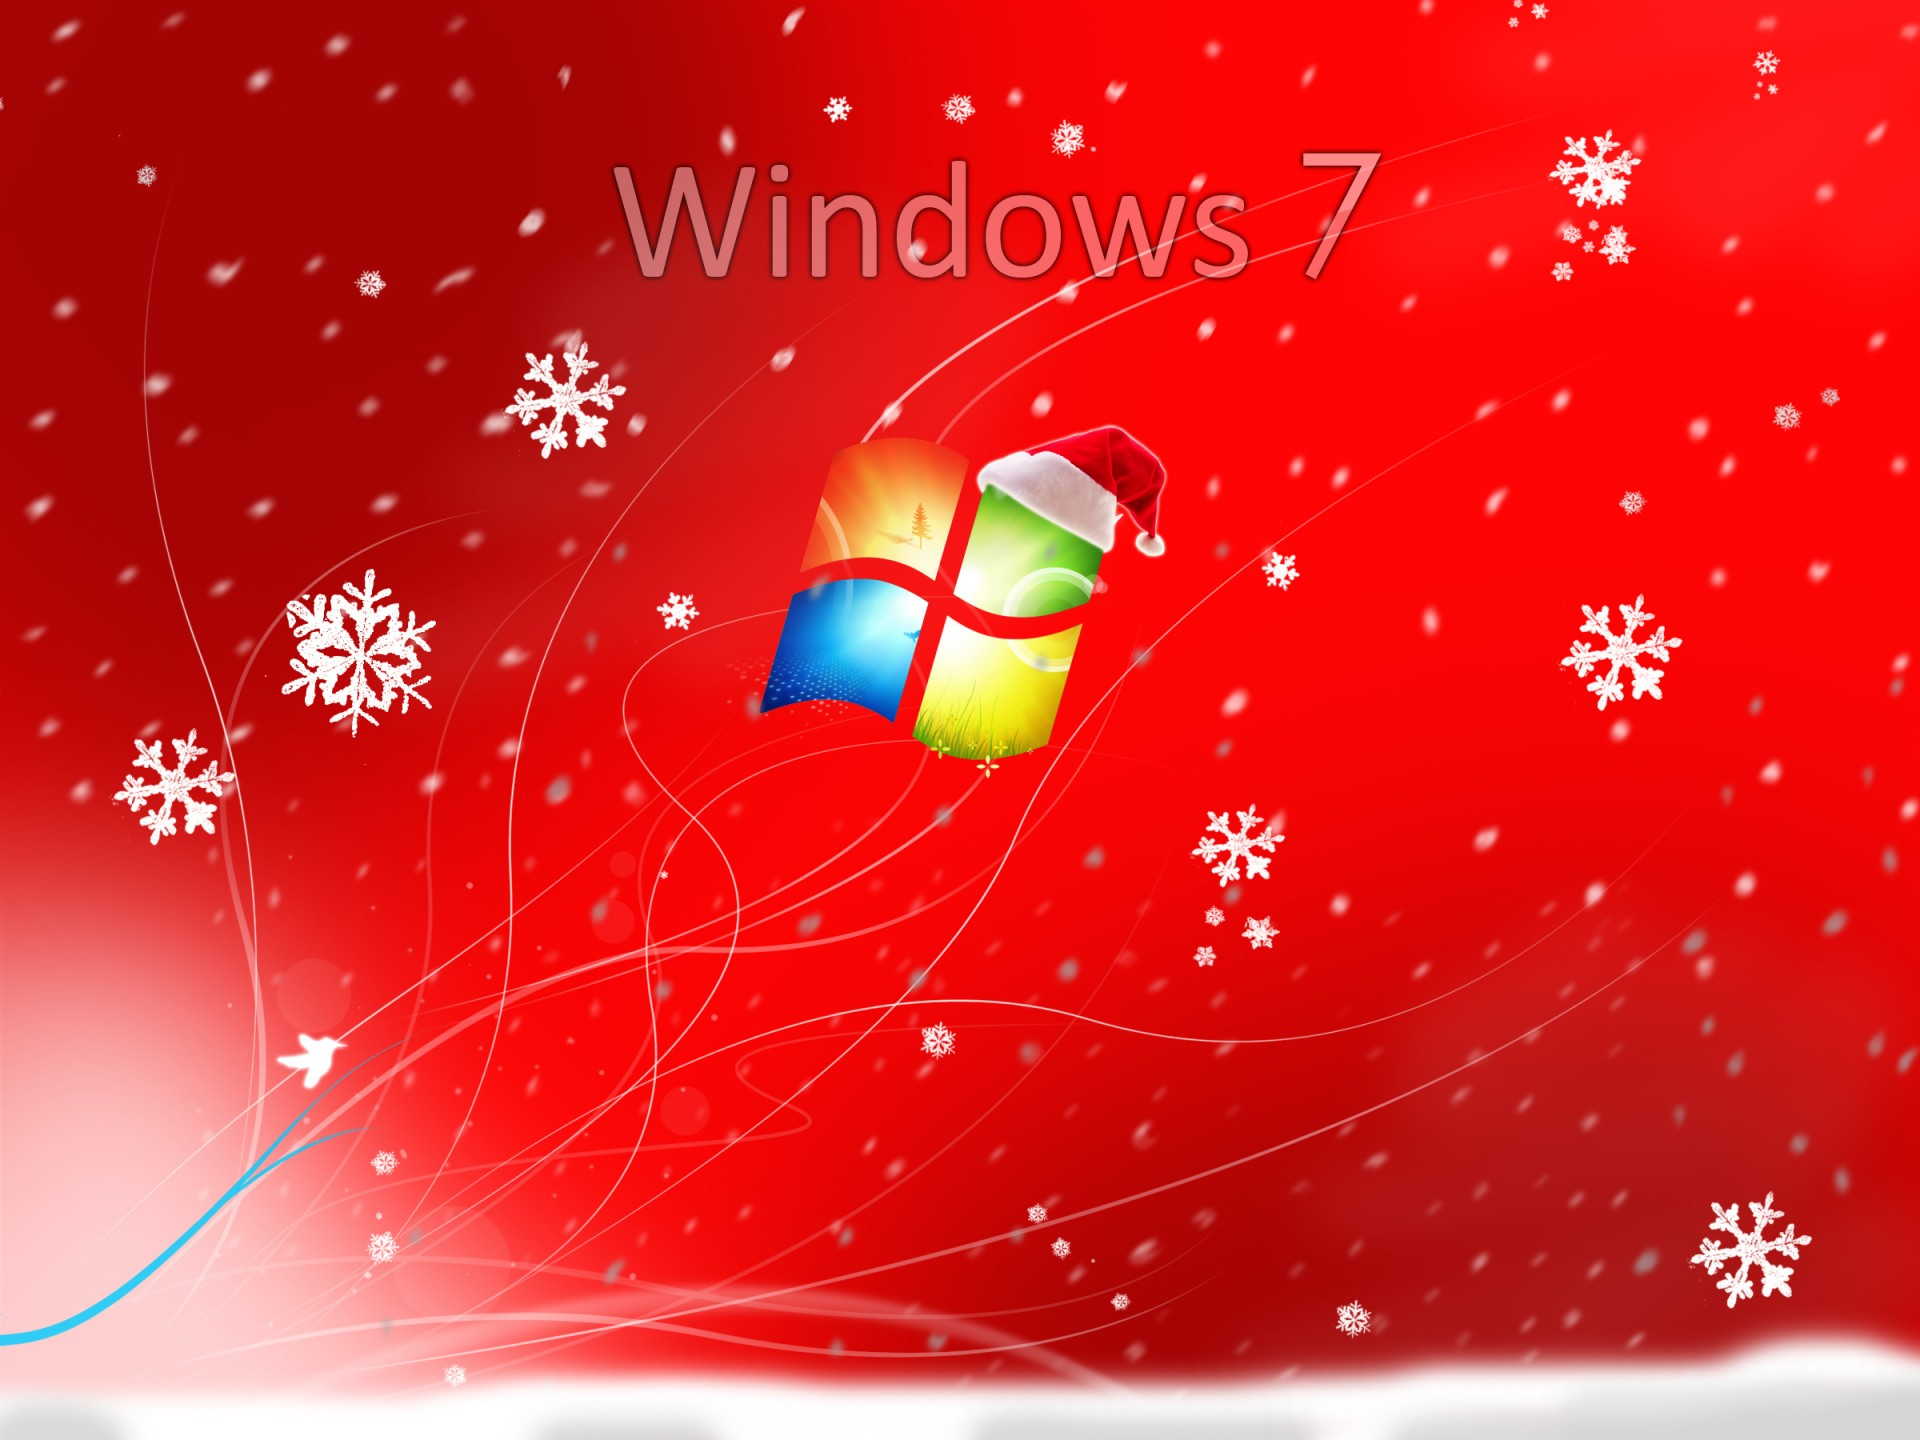 Windows Christmas Wallpaper